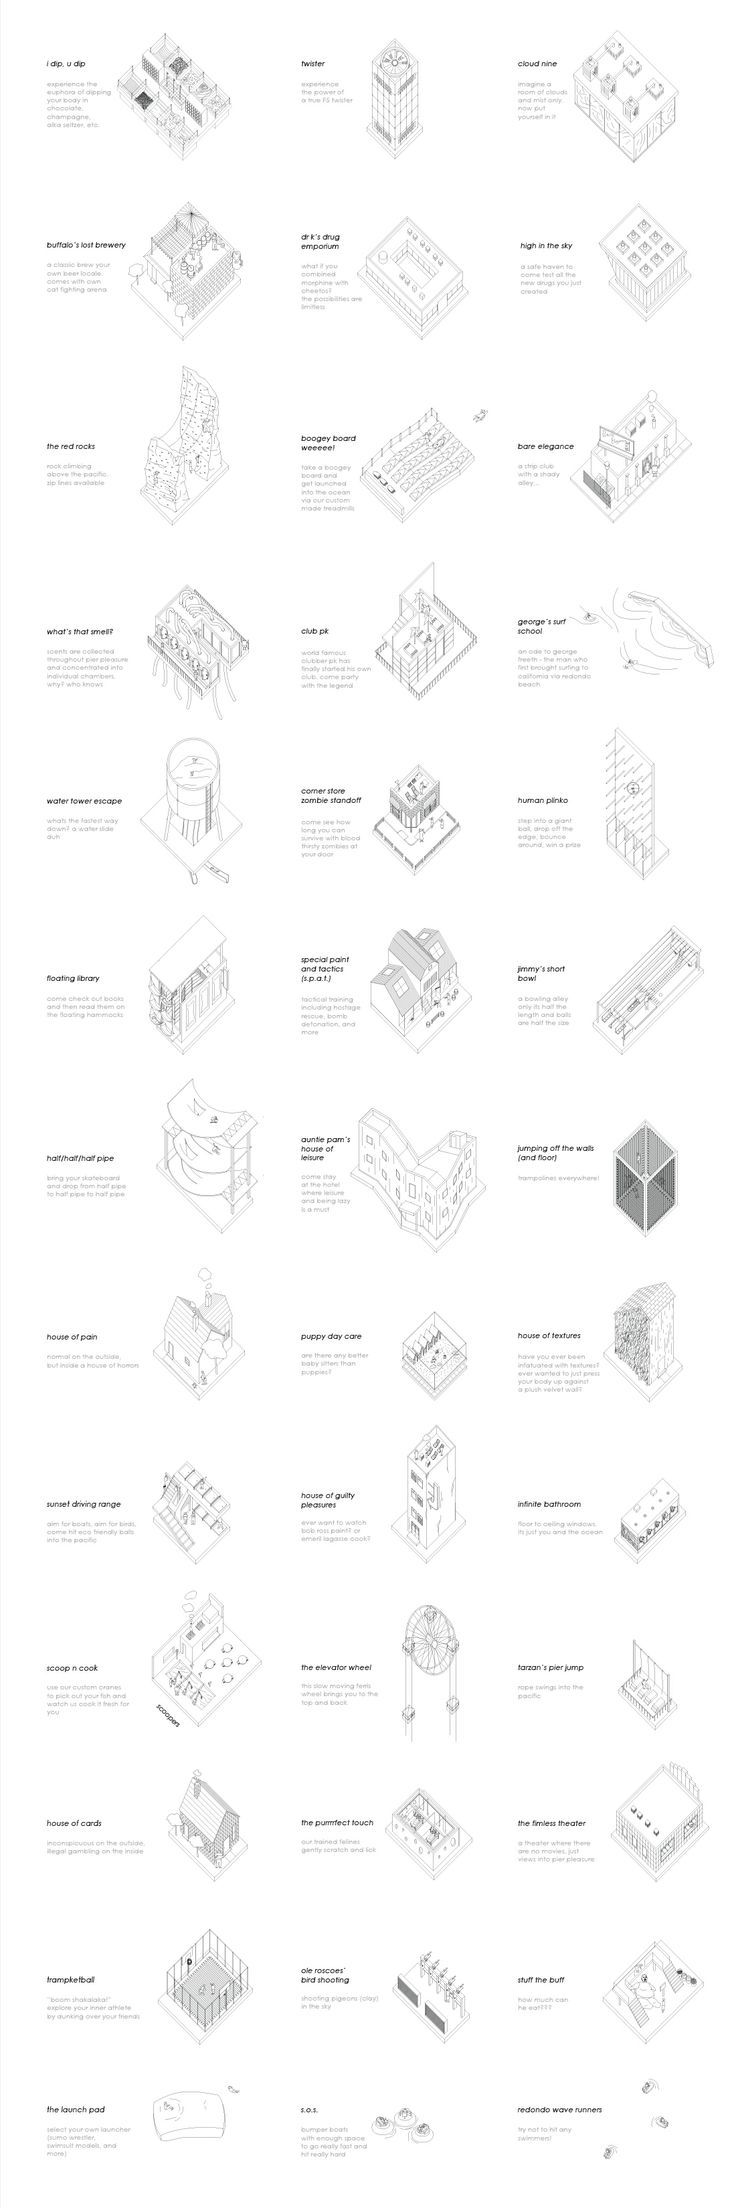 63 Best Modular Design Architecture Images On Pinterest Graph Original Schematic Done By Tony Van Roon Thanks Alot Massing Diagrams